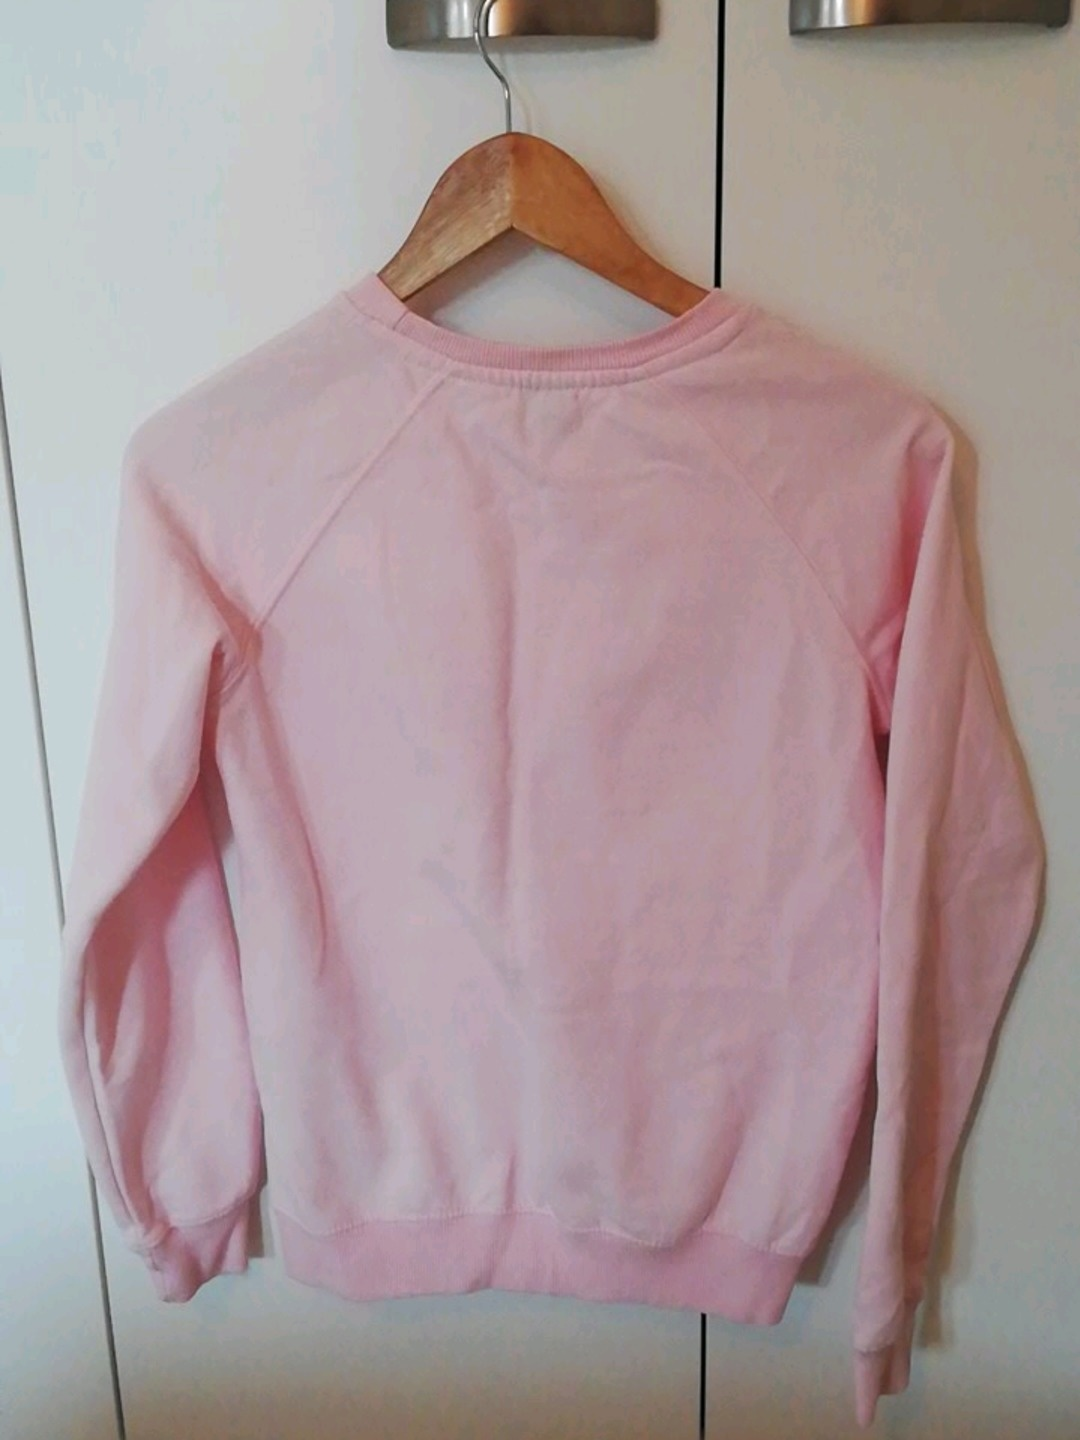 Women's hoodies & sweatshirts - GINA TRICOT photo 2